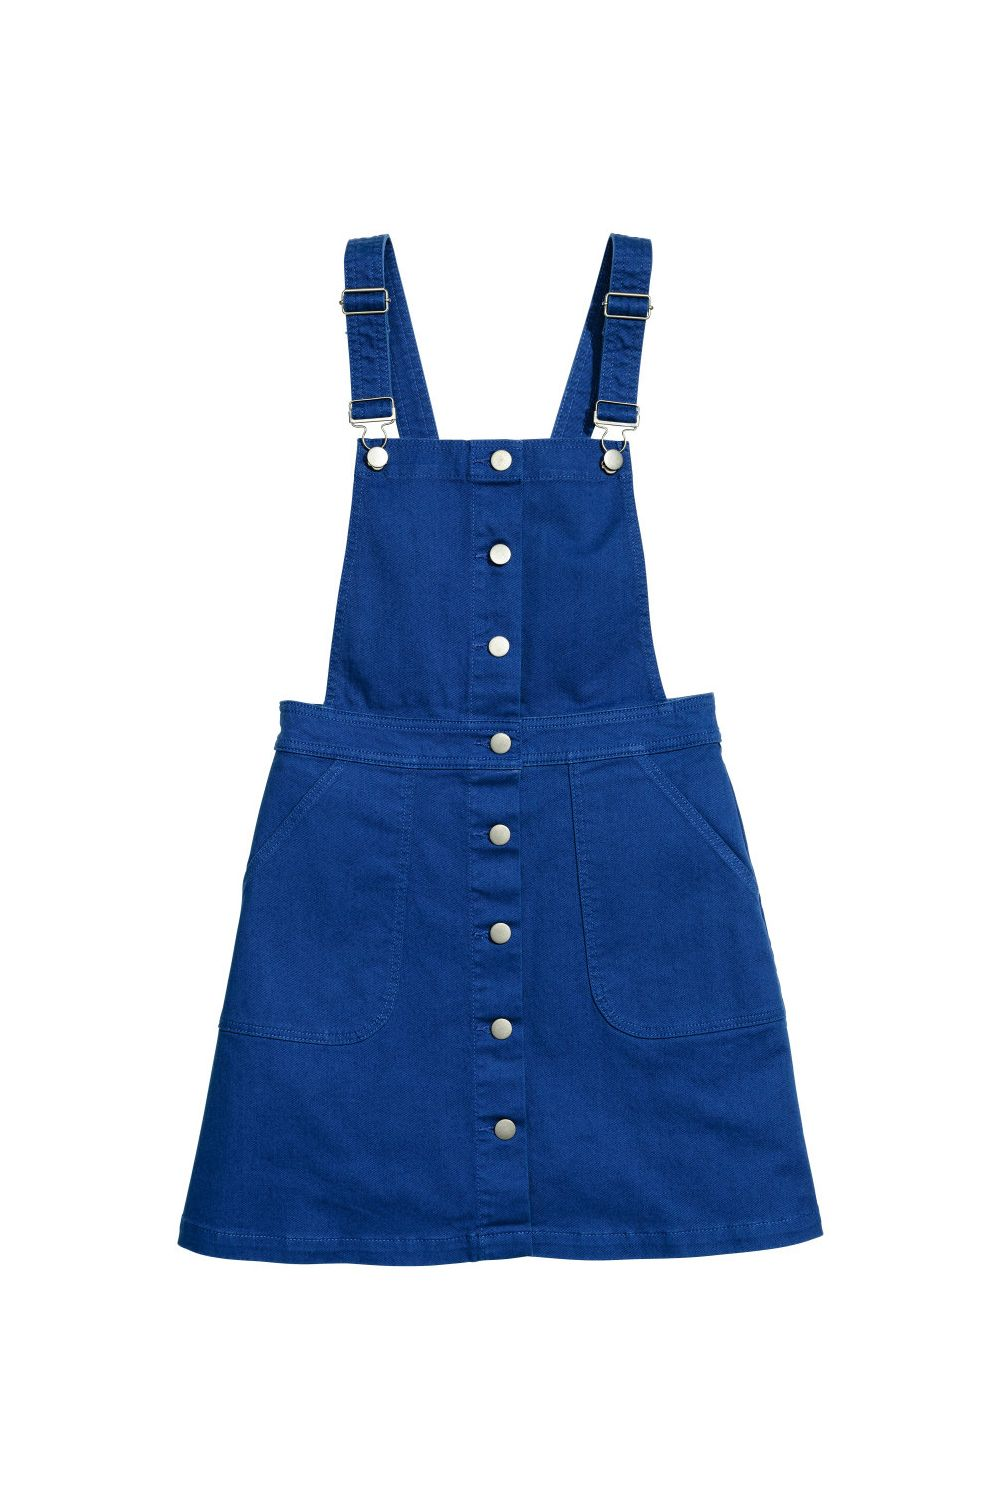 """<p>The classic jean overall dress re-purposes the trouser version into a more modern version with greater breeze potential (here's looking at you, spring). It's ideal forpairingwith casualwhite tees and button-up shirtsor even cropped tops à<span class=""""redactor-invisible-space"""" data-verified=""""redactor"""" data-redactor-tag=""""span"""" data-redactor-class=""""redactor-invisible-space""""></span> la <a href=""""http://www.whowhatwear.com/what-was-she-wearing-taylor-swift-overalls-and-crop-top-2015"""" target=""""_blank"""" data-tracking-id=""""recirc-text-link"""">Taylor Swift</a>.</p><p><strong data-redactor-tag=""""strong"""">Bib Overall Dress, $35;<a href=""""http://www.hm.com/us/product/54109?gclid=CjwKEAiArbrFBRDL4Oiz97GP2nISJAAmJMFa511opmDEZ2QSSQYLCR85ns0eW8kCNBCuTDZfeLZXhBoC9Fjw_wcB&article=54109-B&cm_mmc=pla-_-us-_-ladies_skirts_short-_-54109&s_kwcid=AL!860!3!46030674837!!!g!113711425077!&ef_id=VvA1BQAAALtJs0Co:20170223173121:s"""" target=""""_blank"""" data-tracking-id=""""recirc-text-link"""">hm.com</a>.</strong><span class=""""redactor-invisible-space"""" data-verified=""""redactor"""" data-redactor-tag=""""span"""" data-redactor-class=""""redactor-invisible-space""""></span><br></p>"""